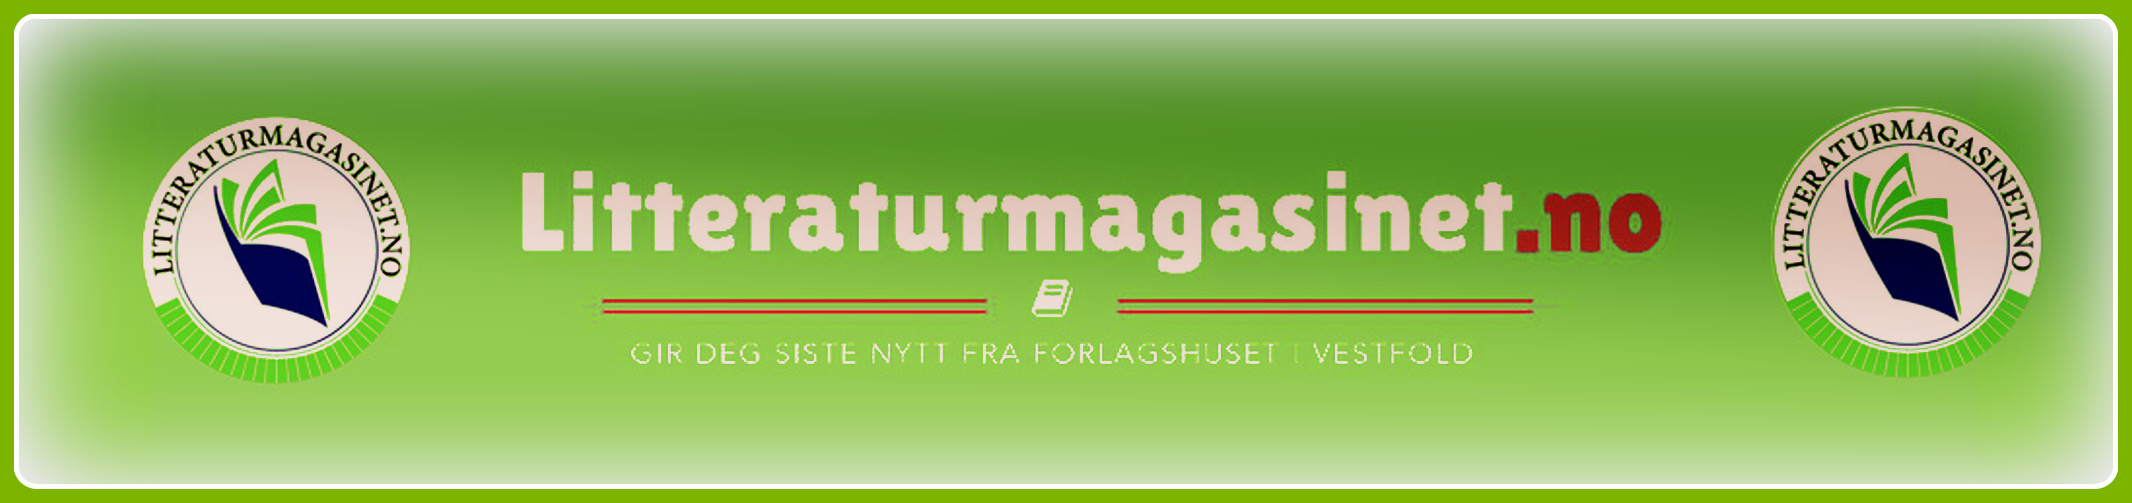 Litteraturmagasinet.no